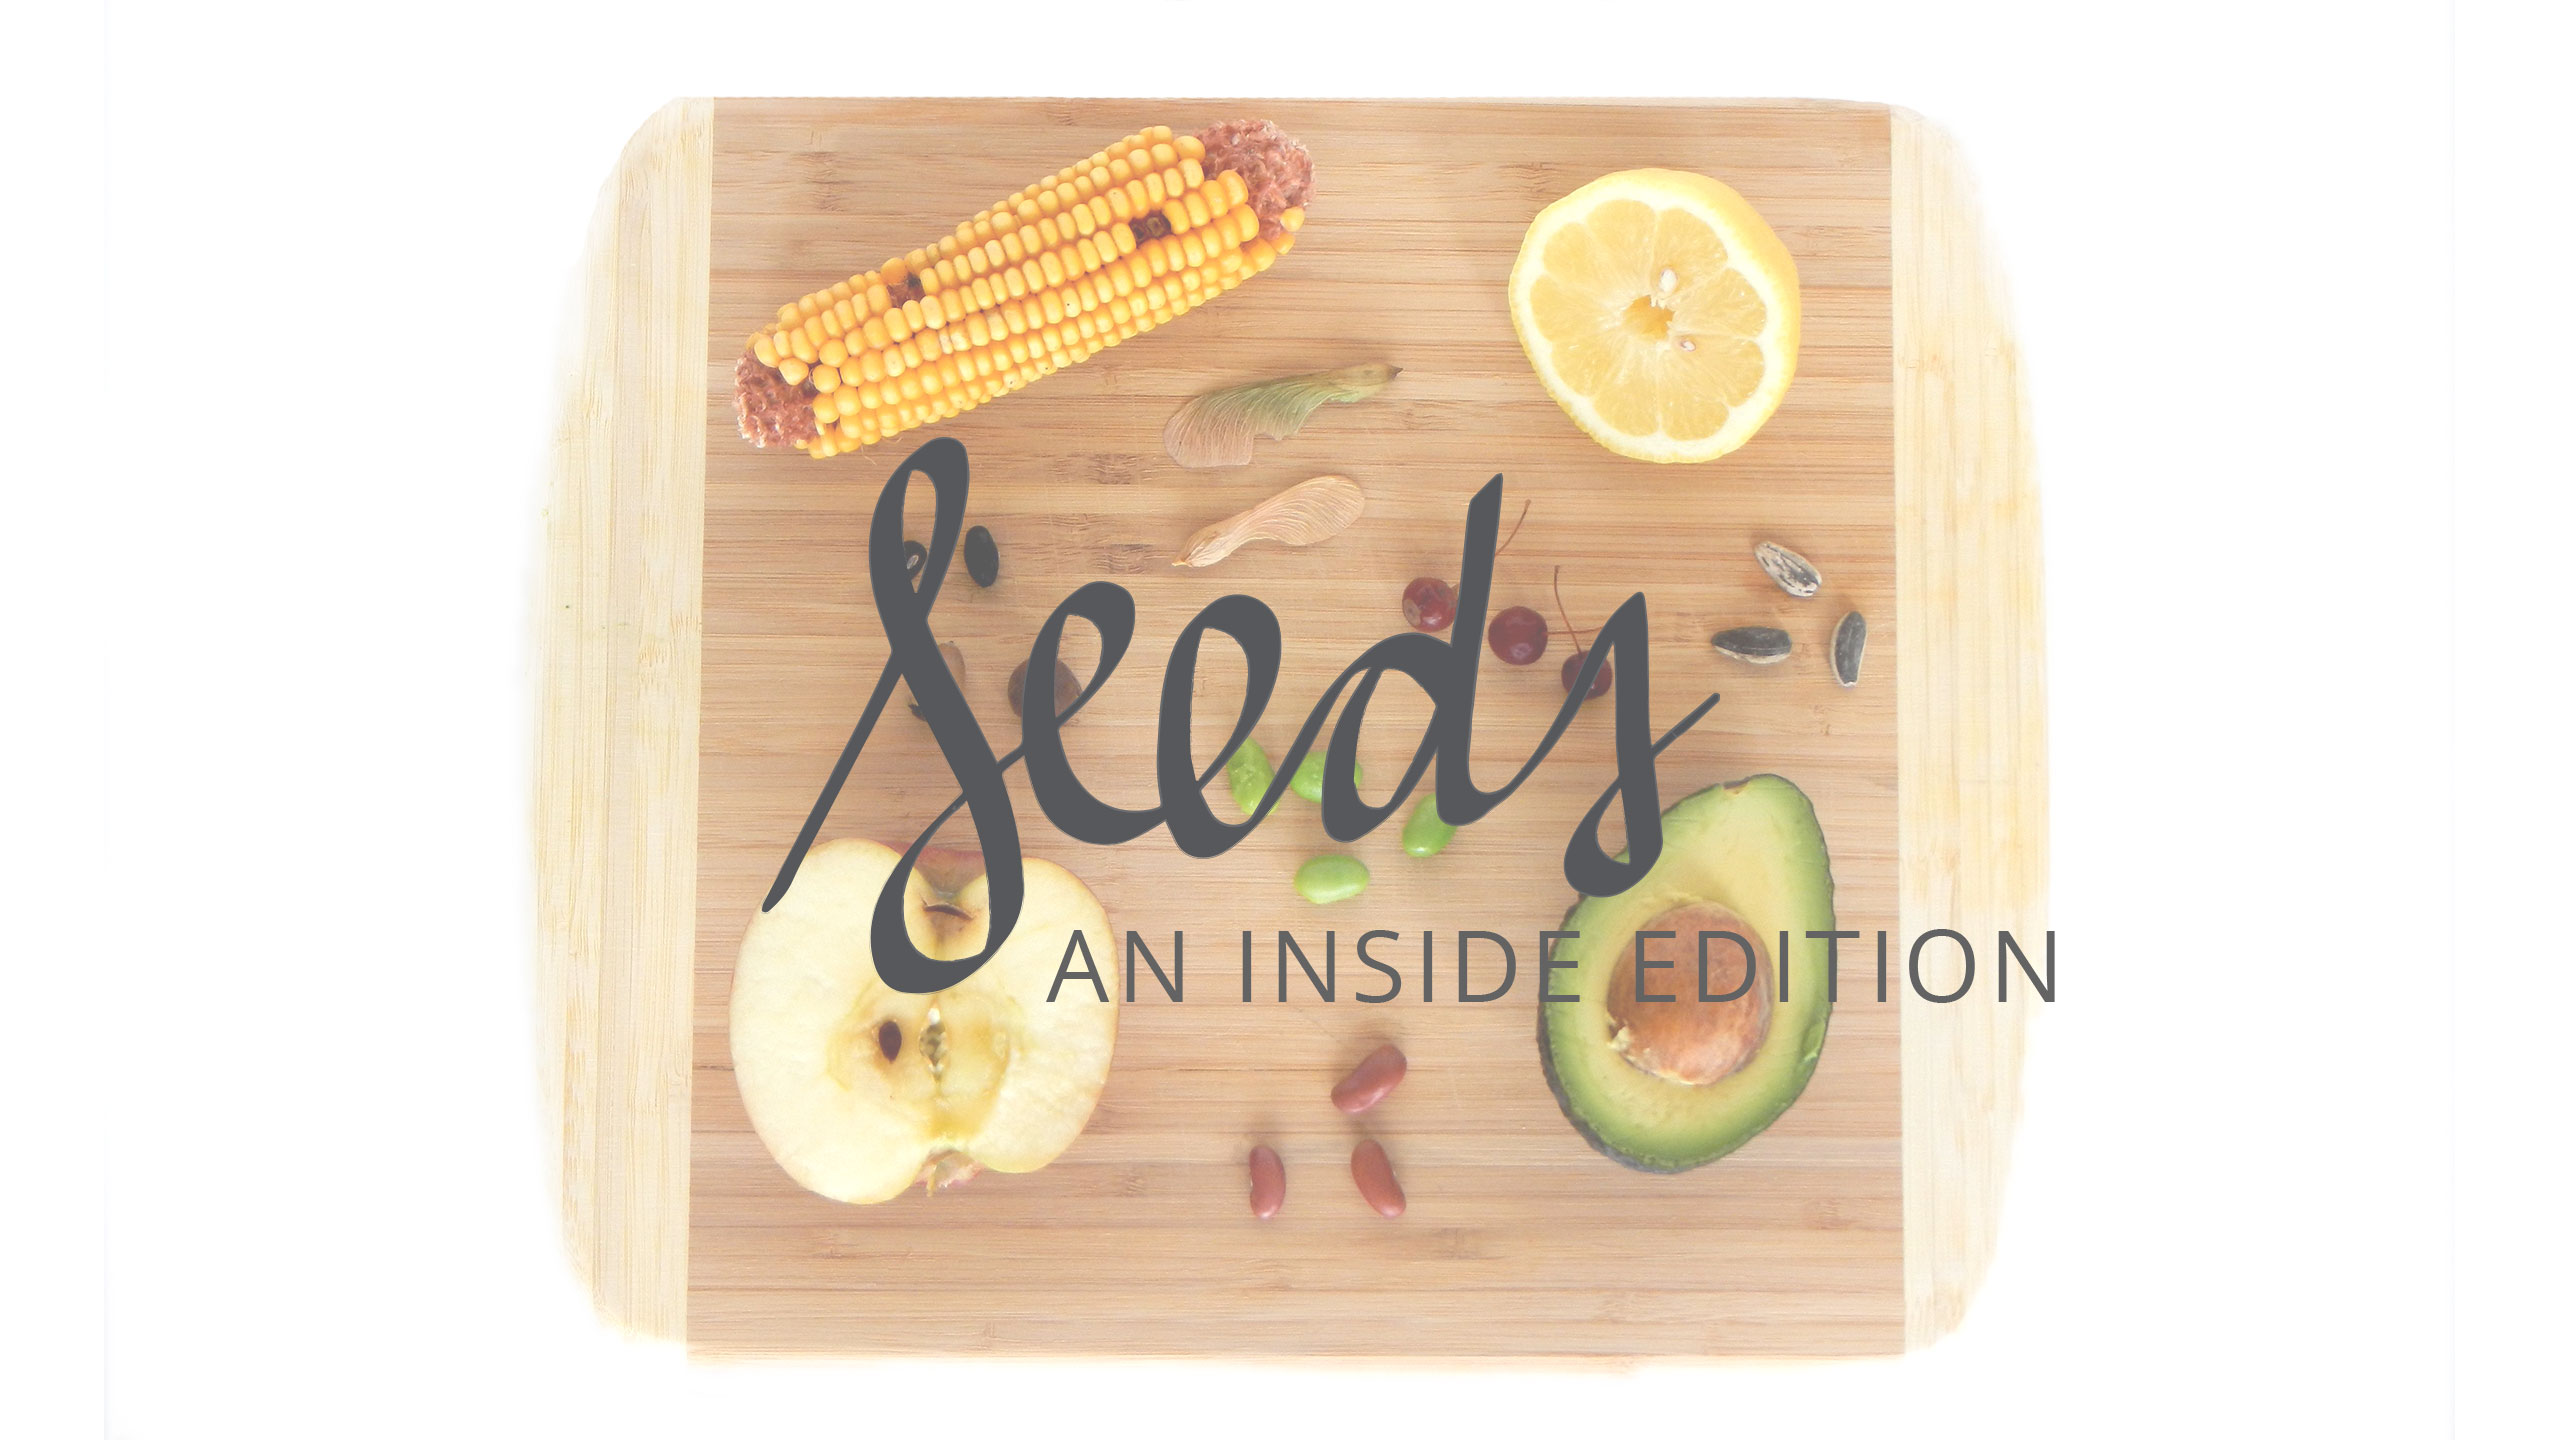 SEEDS: AN INSIDE EDITION